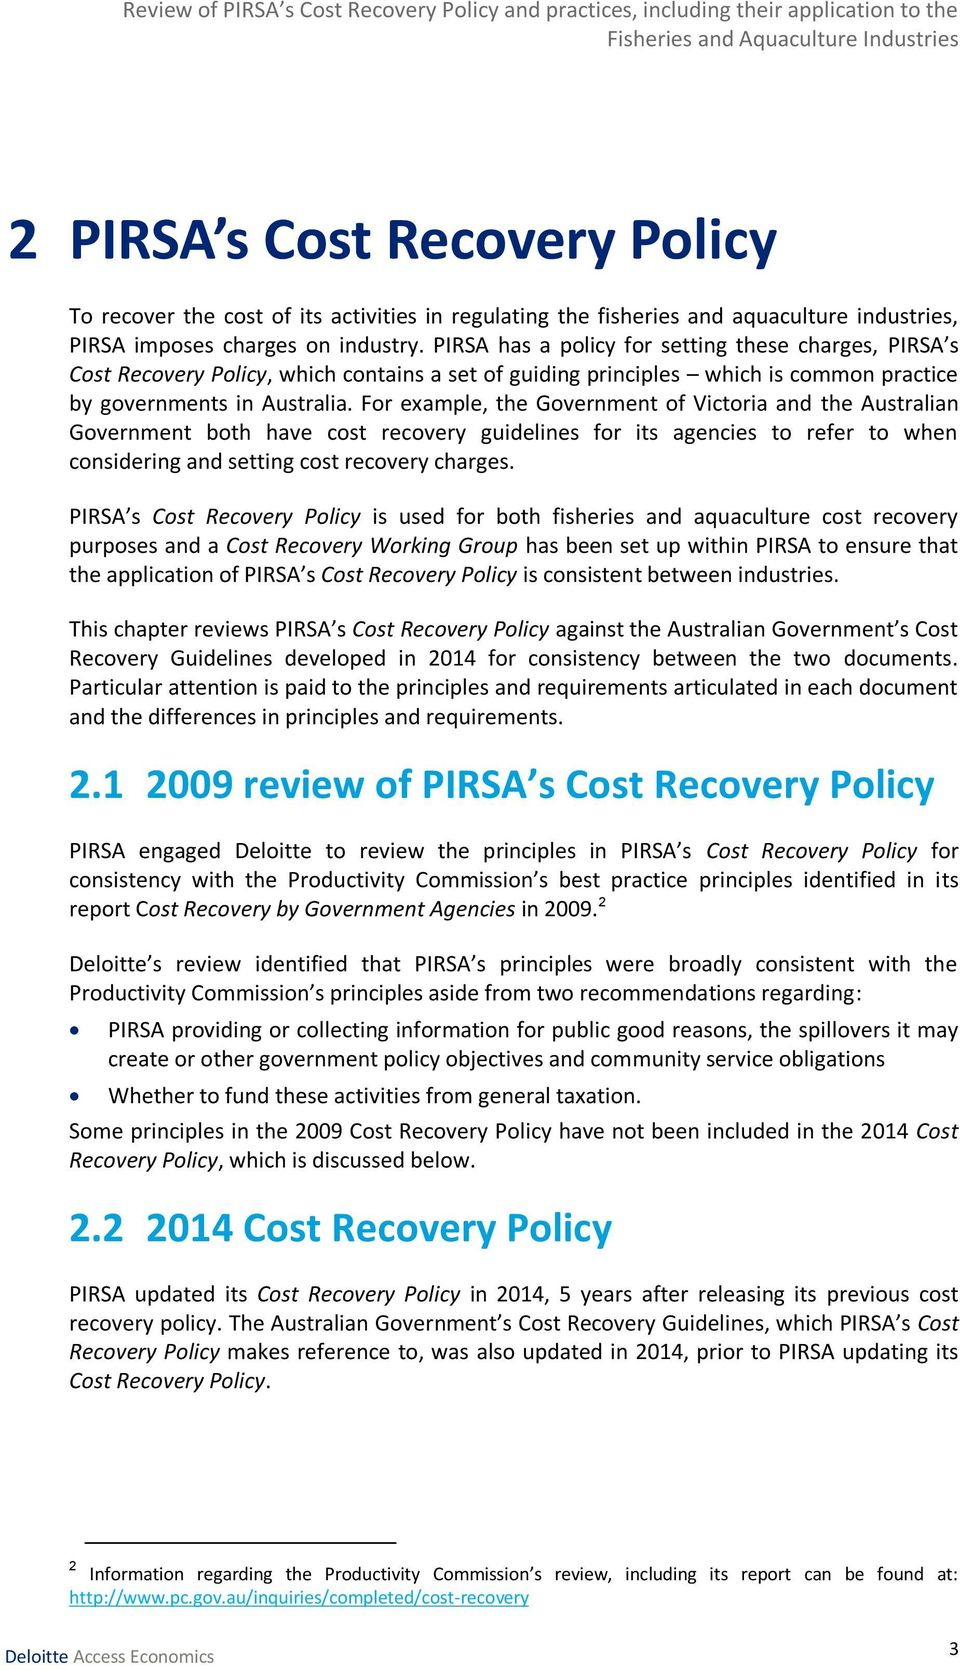 For example, the Government of Victoria and the Australian Government both have cost recovery guidelines for its agencies to refer to when considering and setting cost recovery charges.